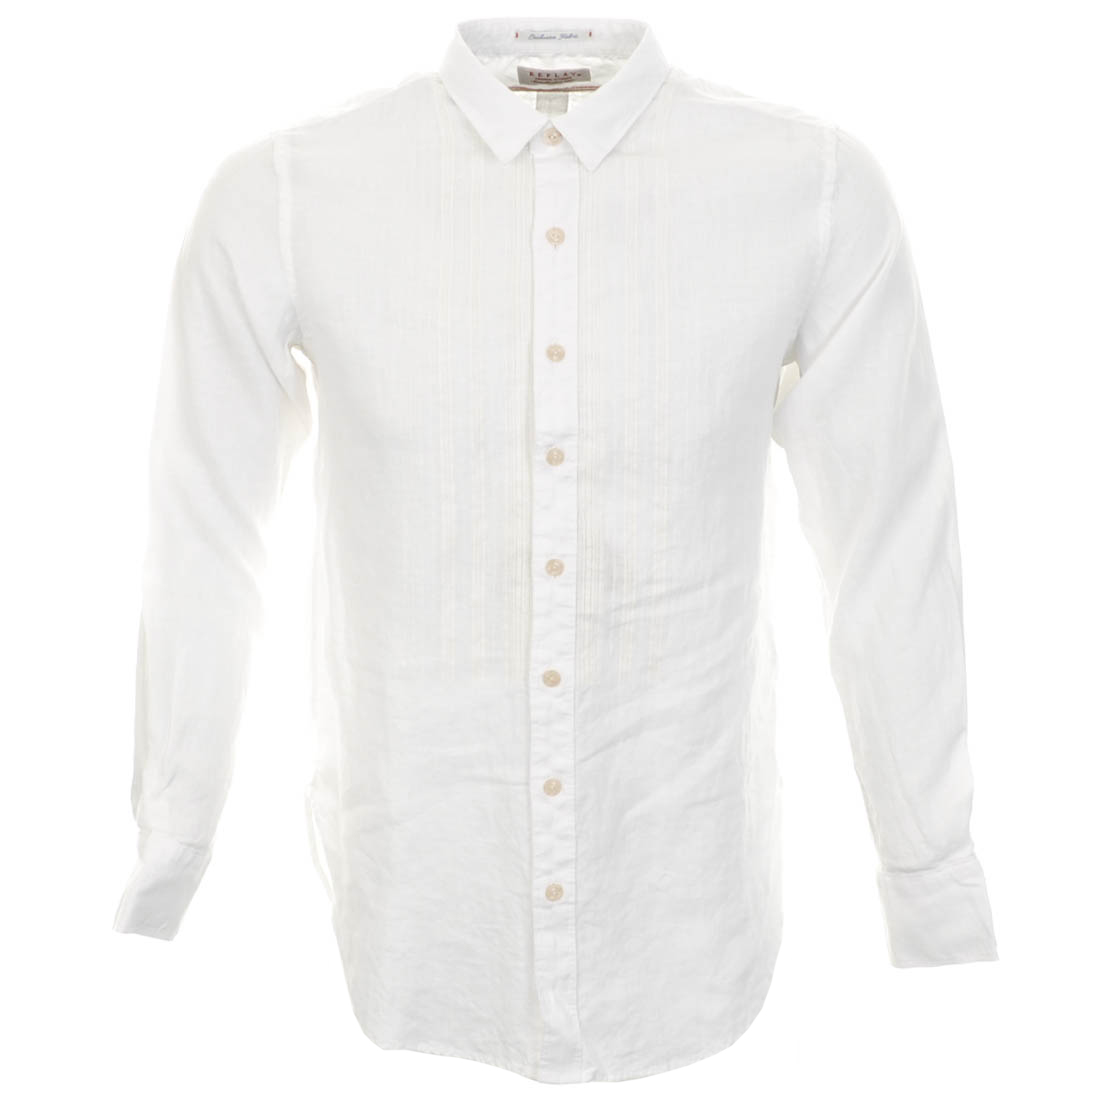 White lallana shirty